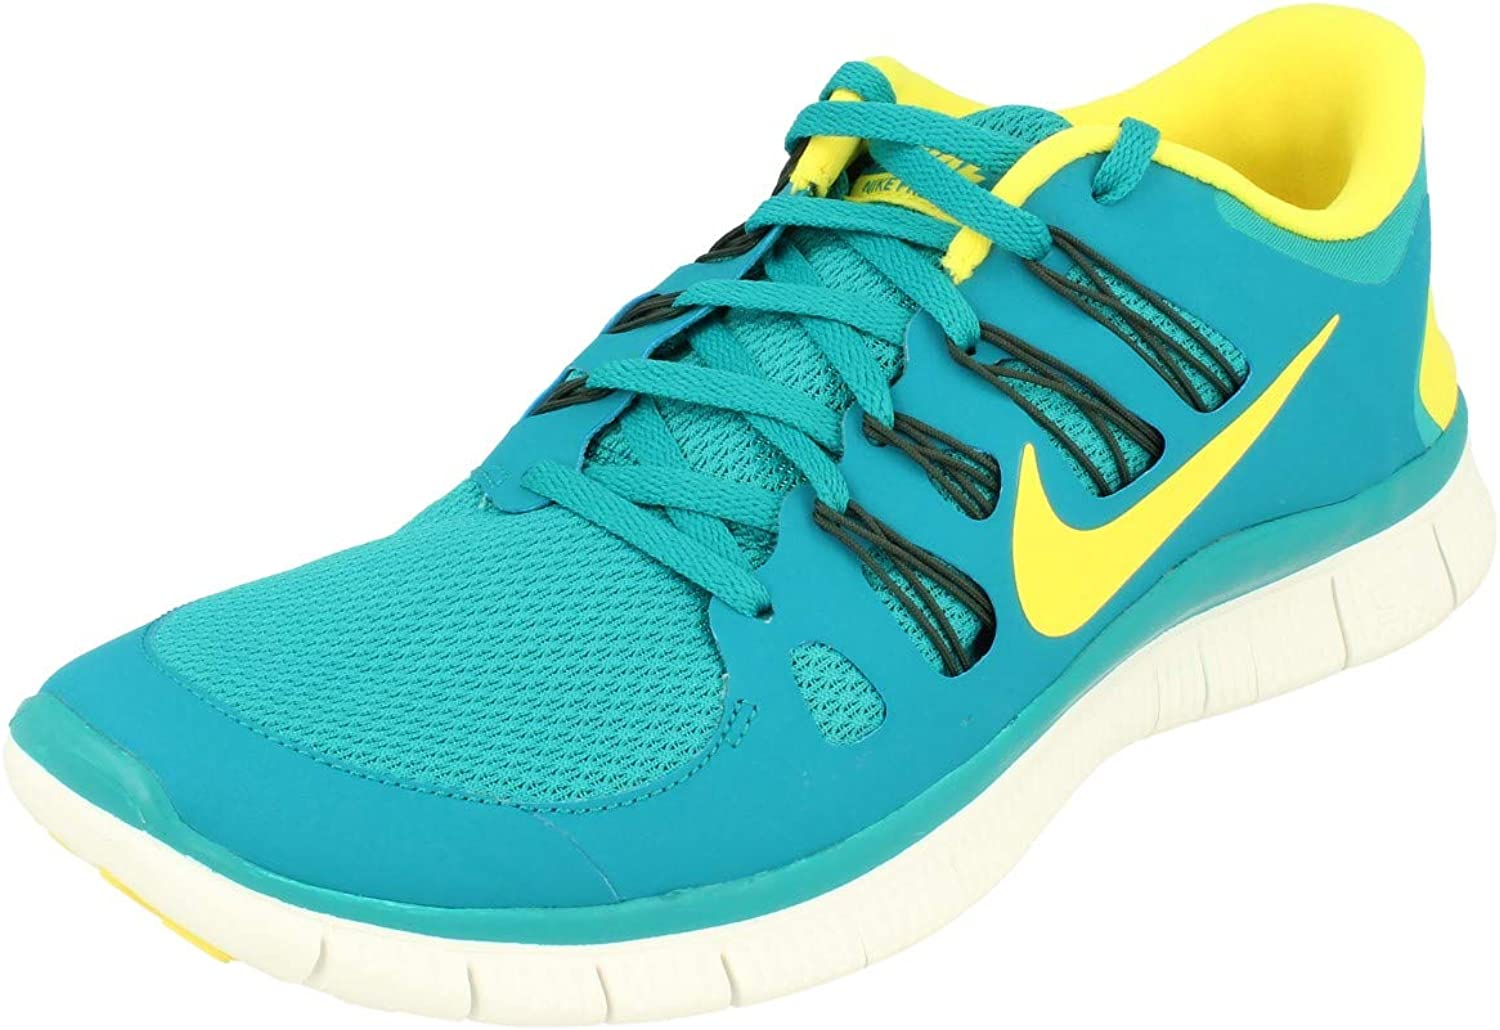 Nike Womens Free 5.0+ Running Trainers 580591 Sneakers shoes